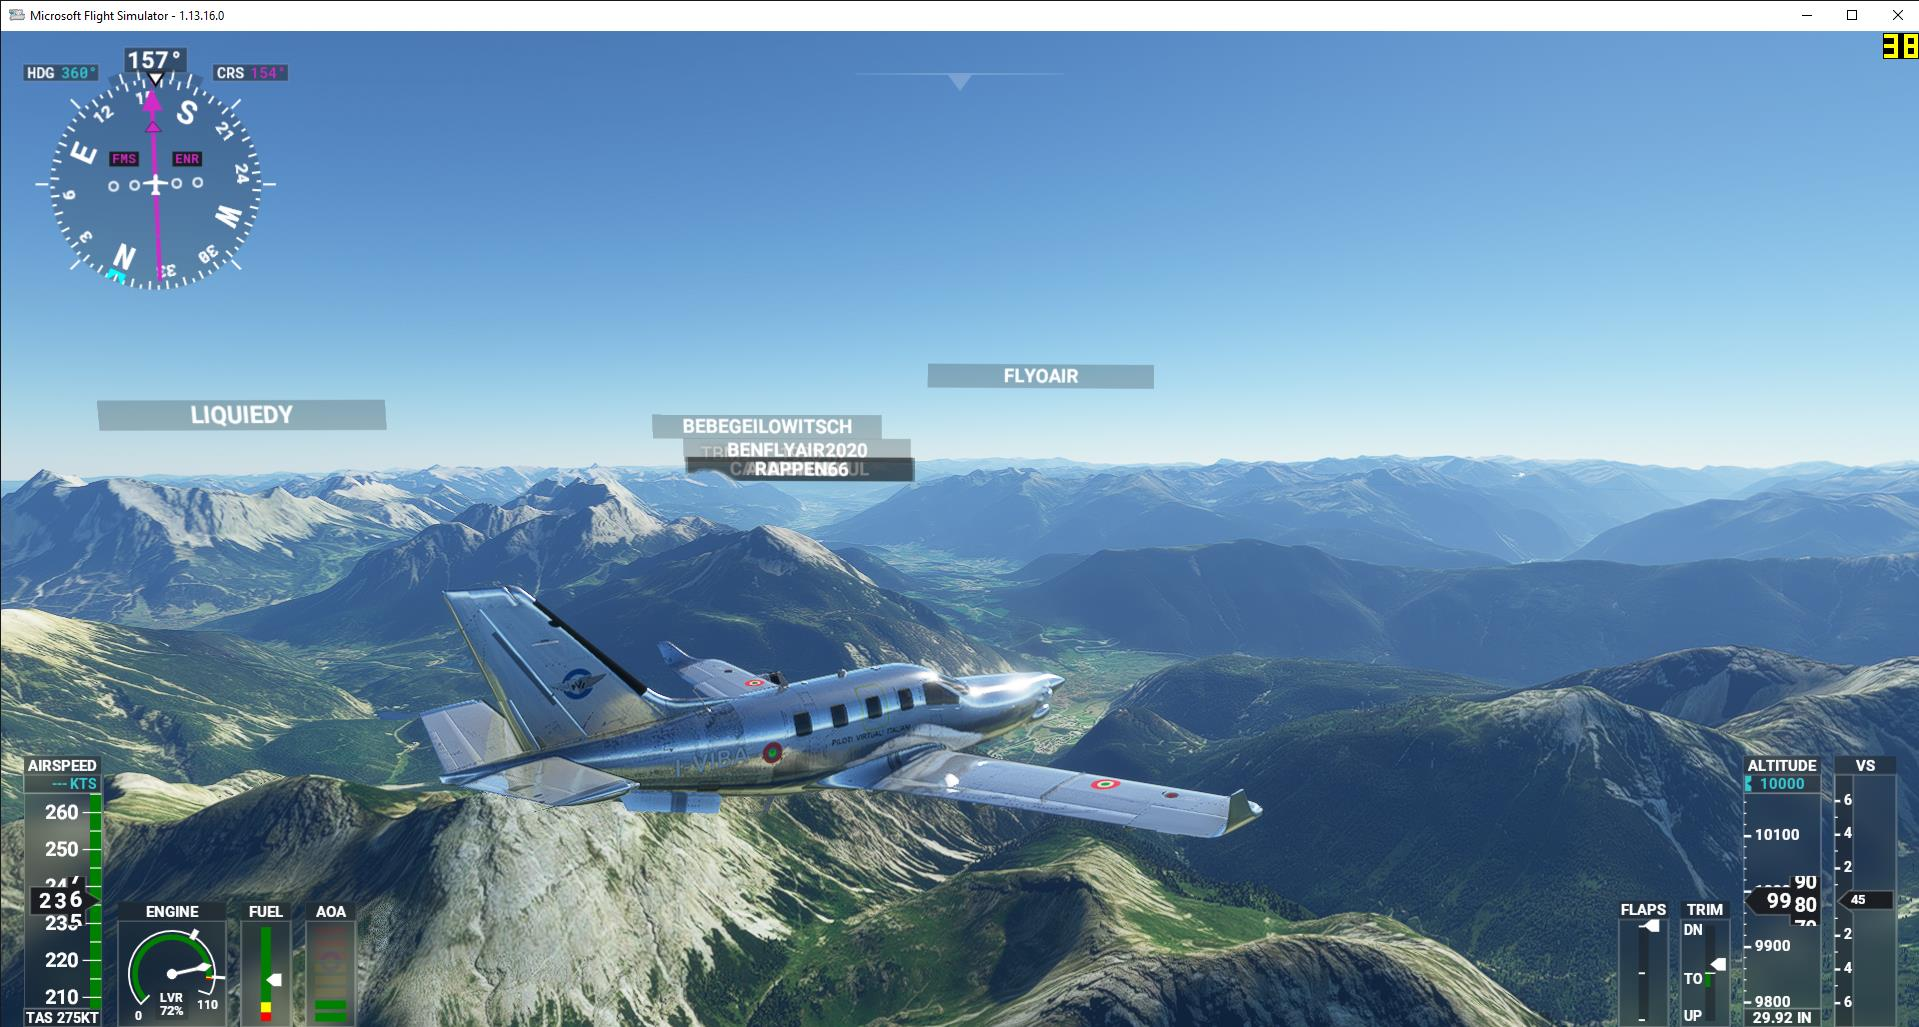 https://vivendobyte.blob.core.windows.net/58401/Microsoft Flight Simulator 23_02_2021 13_00_09.jpg